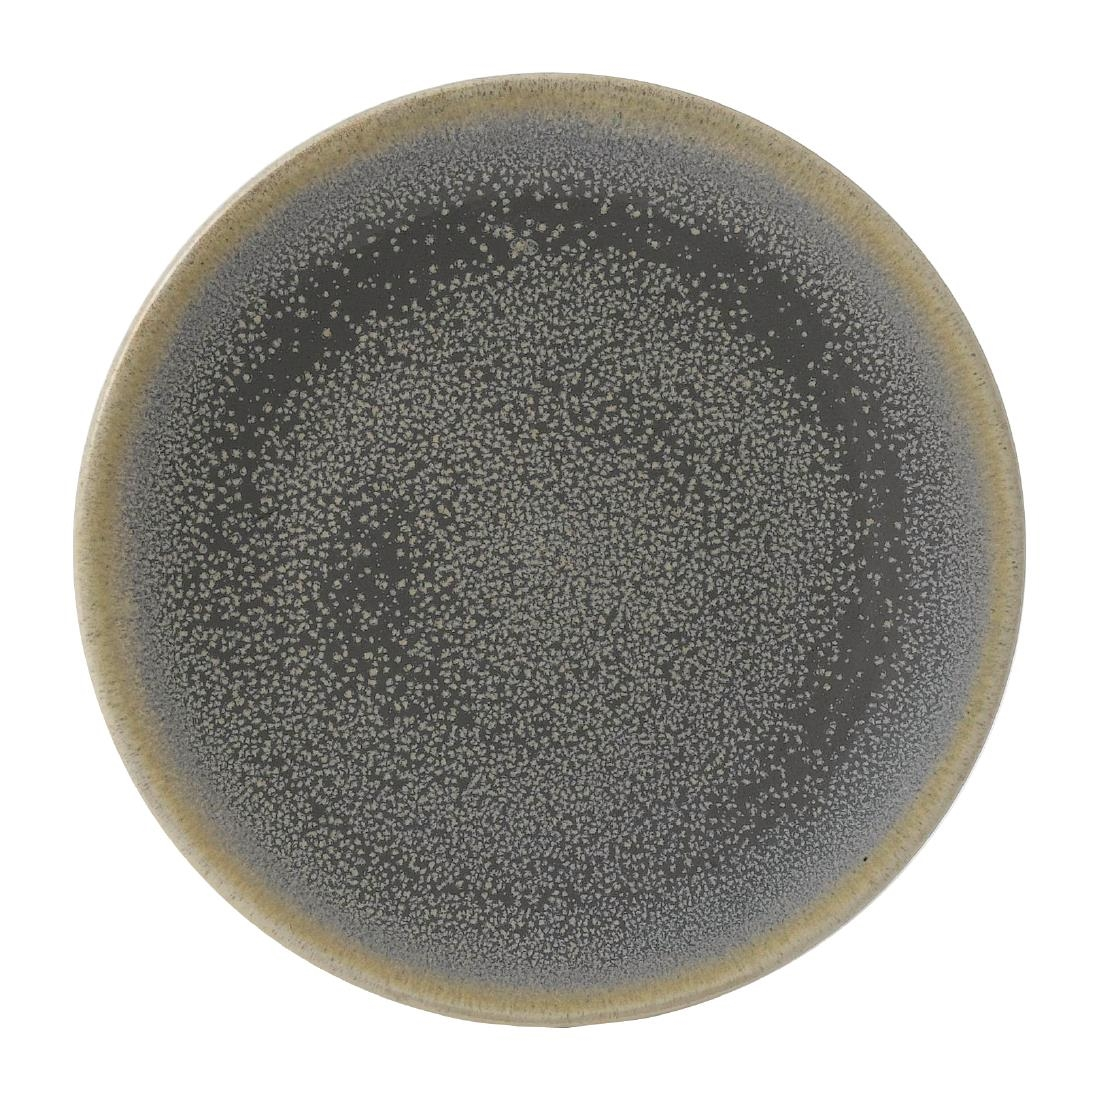 Image of Dudson Evo Granite Coupe Plate 162mm (Pack of 6) Pack of 6